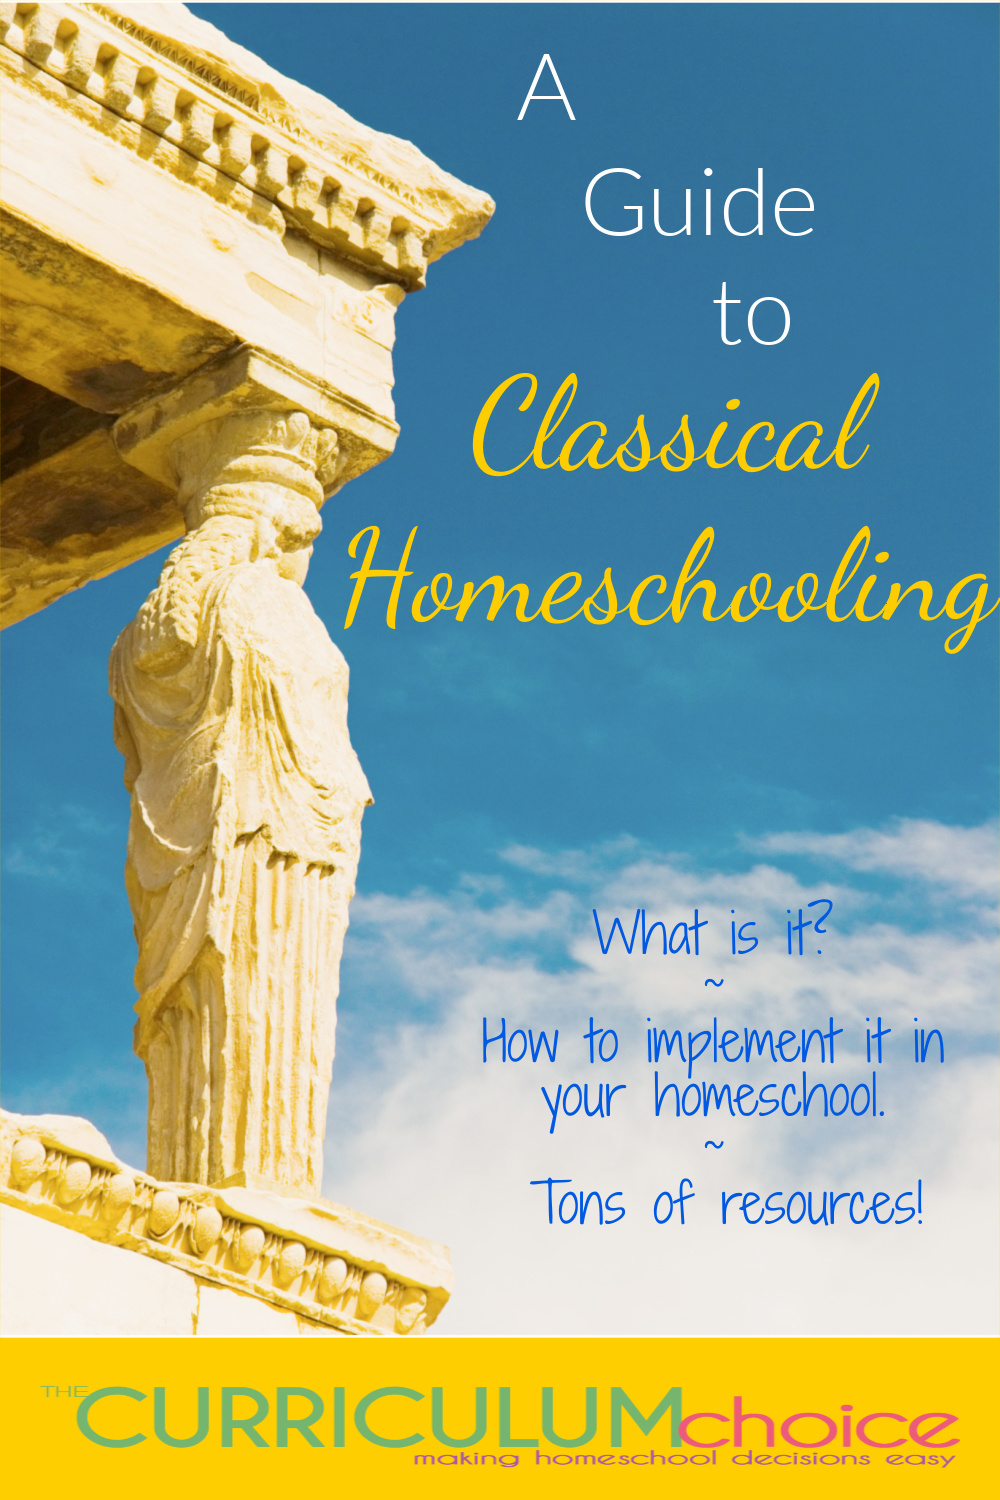 A Guide to Classical Homeschooling - what is classical education, how you can implement in your homeschool, and tons of resources! From The Curriculum Choice